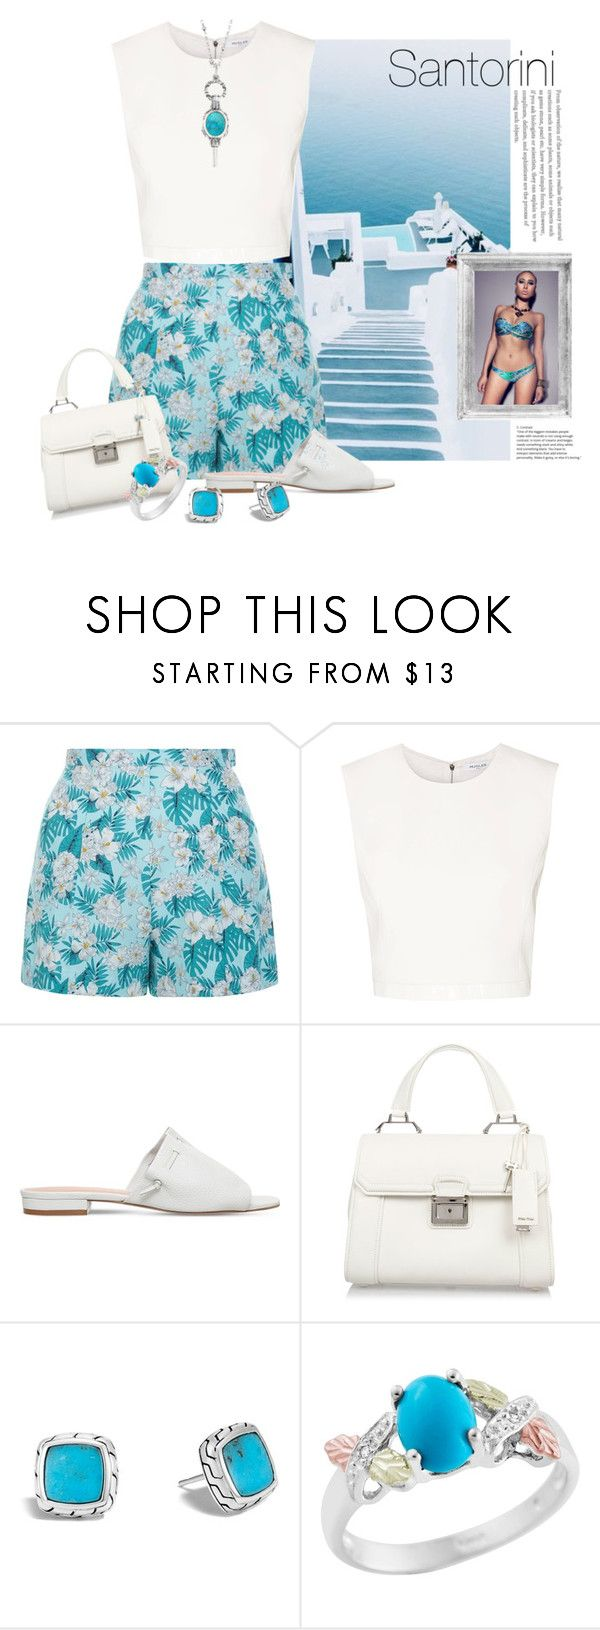 """Untitled #397"" by riuk ❤ liked on Polyvore featuring New Look, Thierry Mugler, Kurt Geiger, Miu Miu and John Hardy"